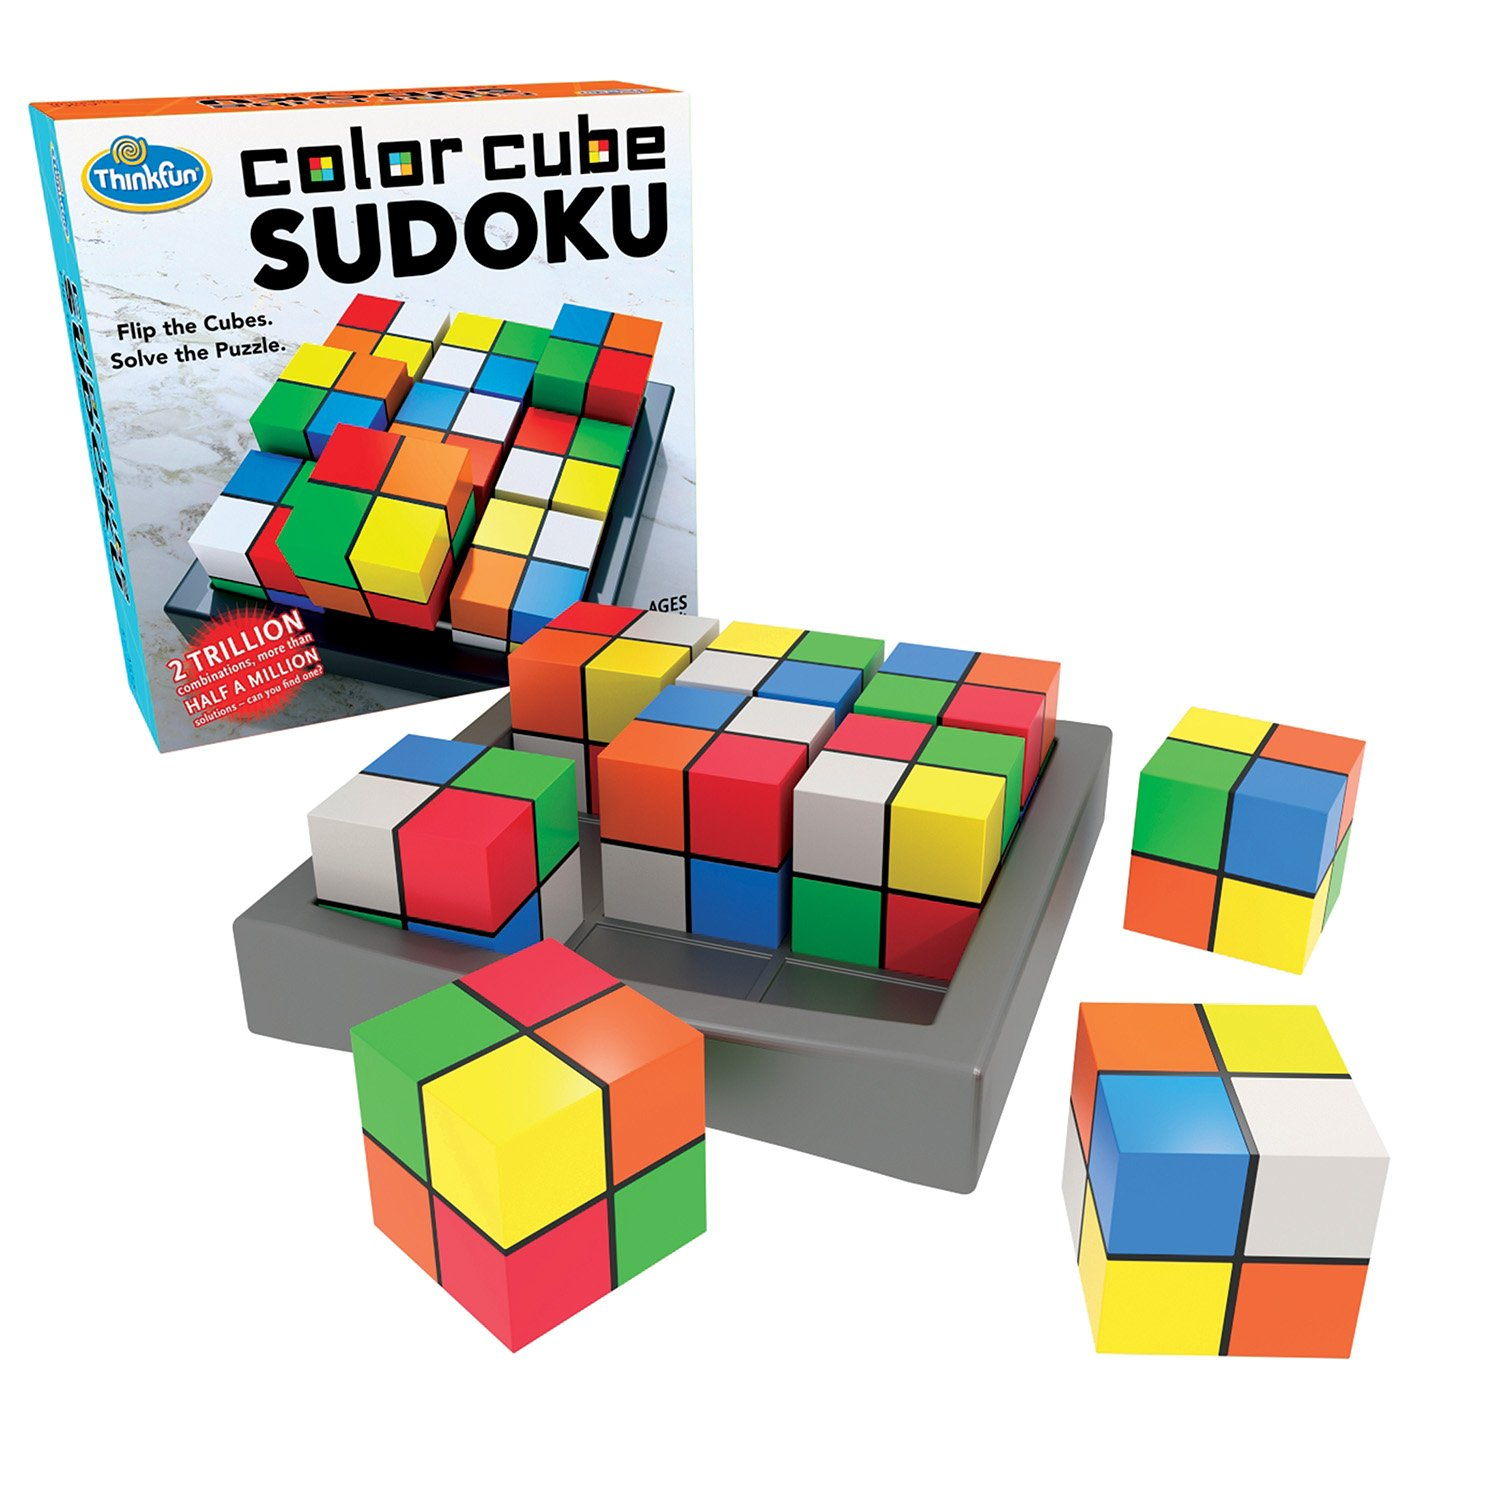 ThinkFun Color Cube Sudoku - Fun, Award Winning Version of Sudoku Using Colors Instead of Numbers For Age 8 and Up by Think Fun